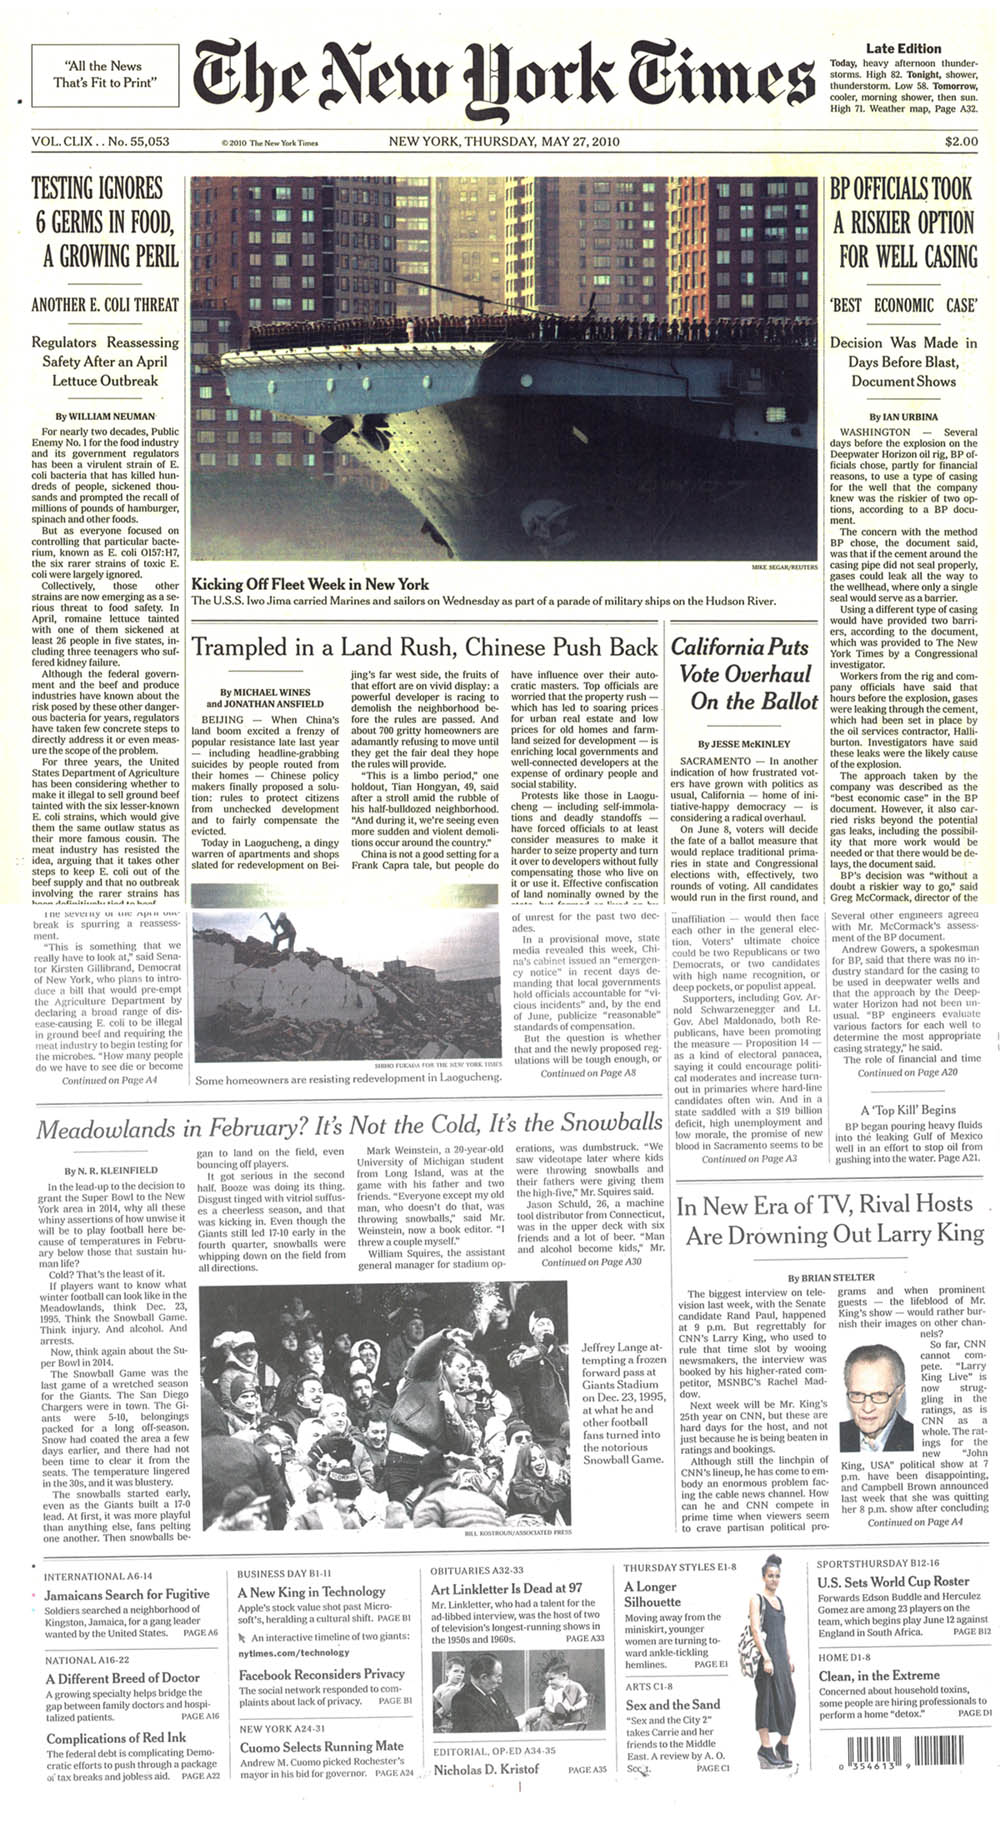 NY Times cover - edit 3.jpg